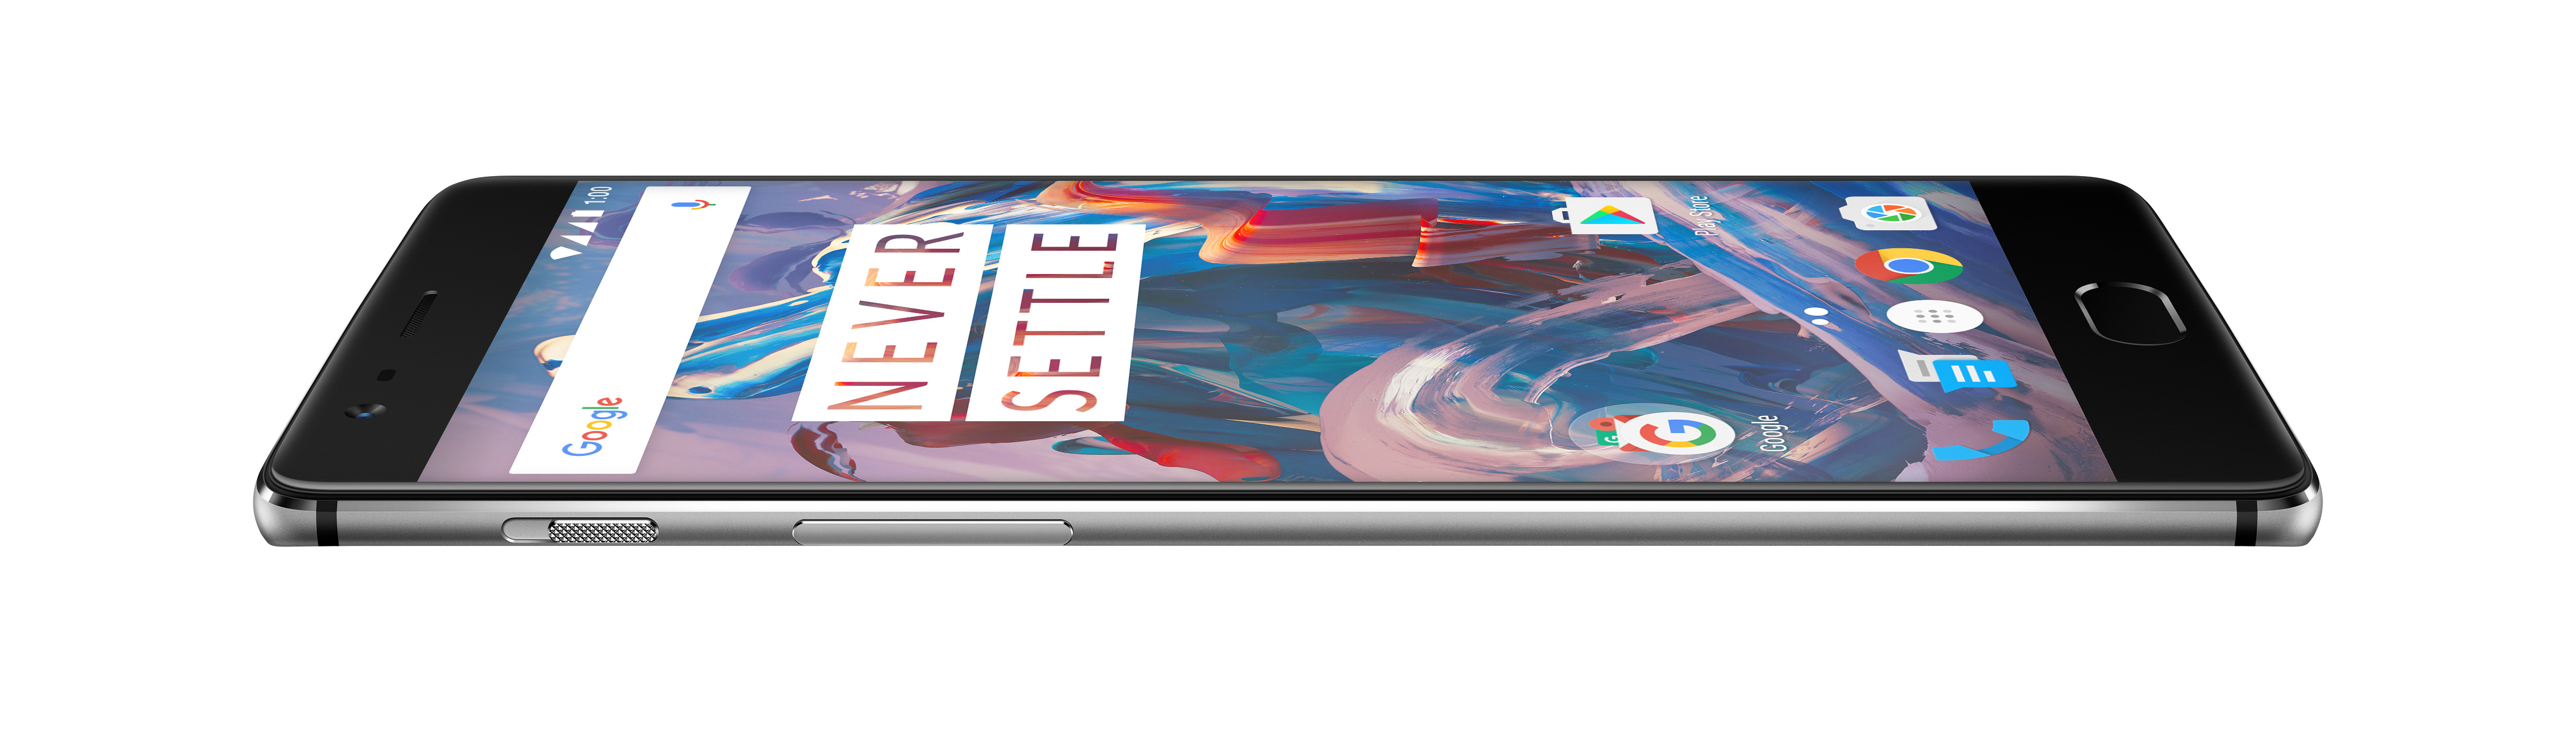 OnePlus 3 open source kernel files are available on Github